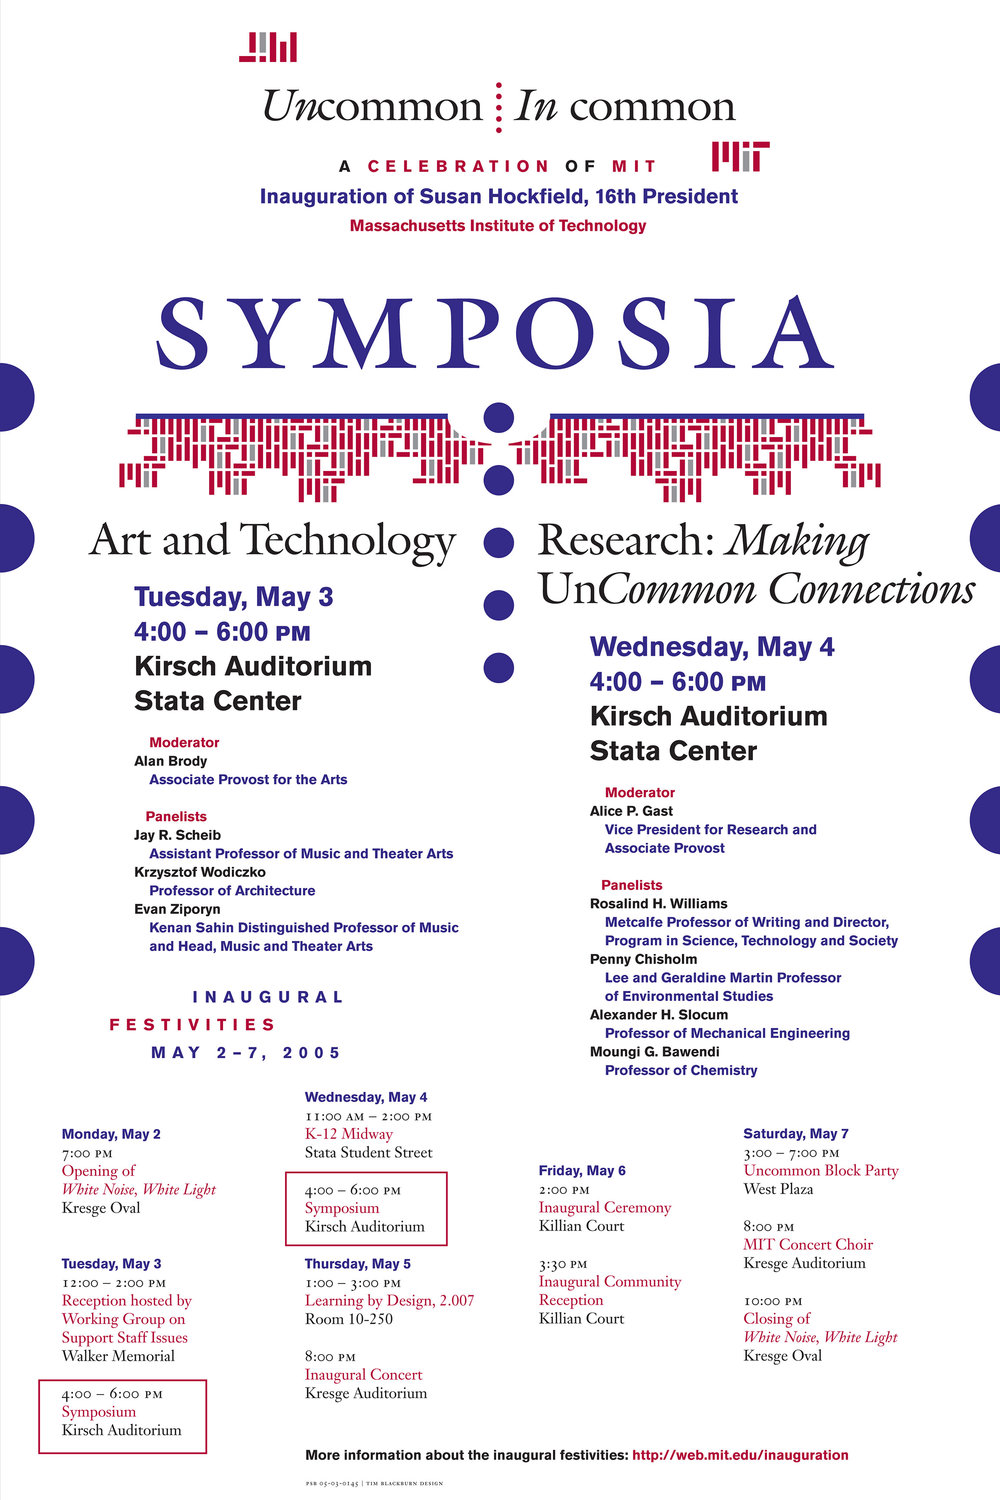 6-poster-inaug-symposia-1lrgmed.jpg